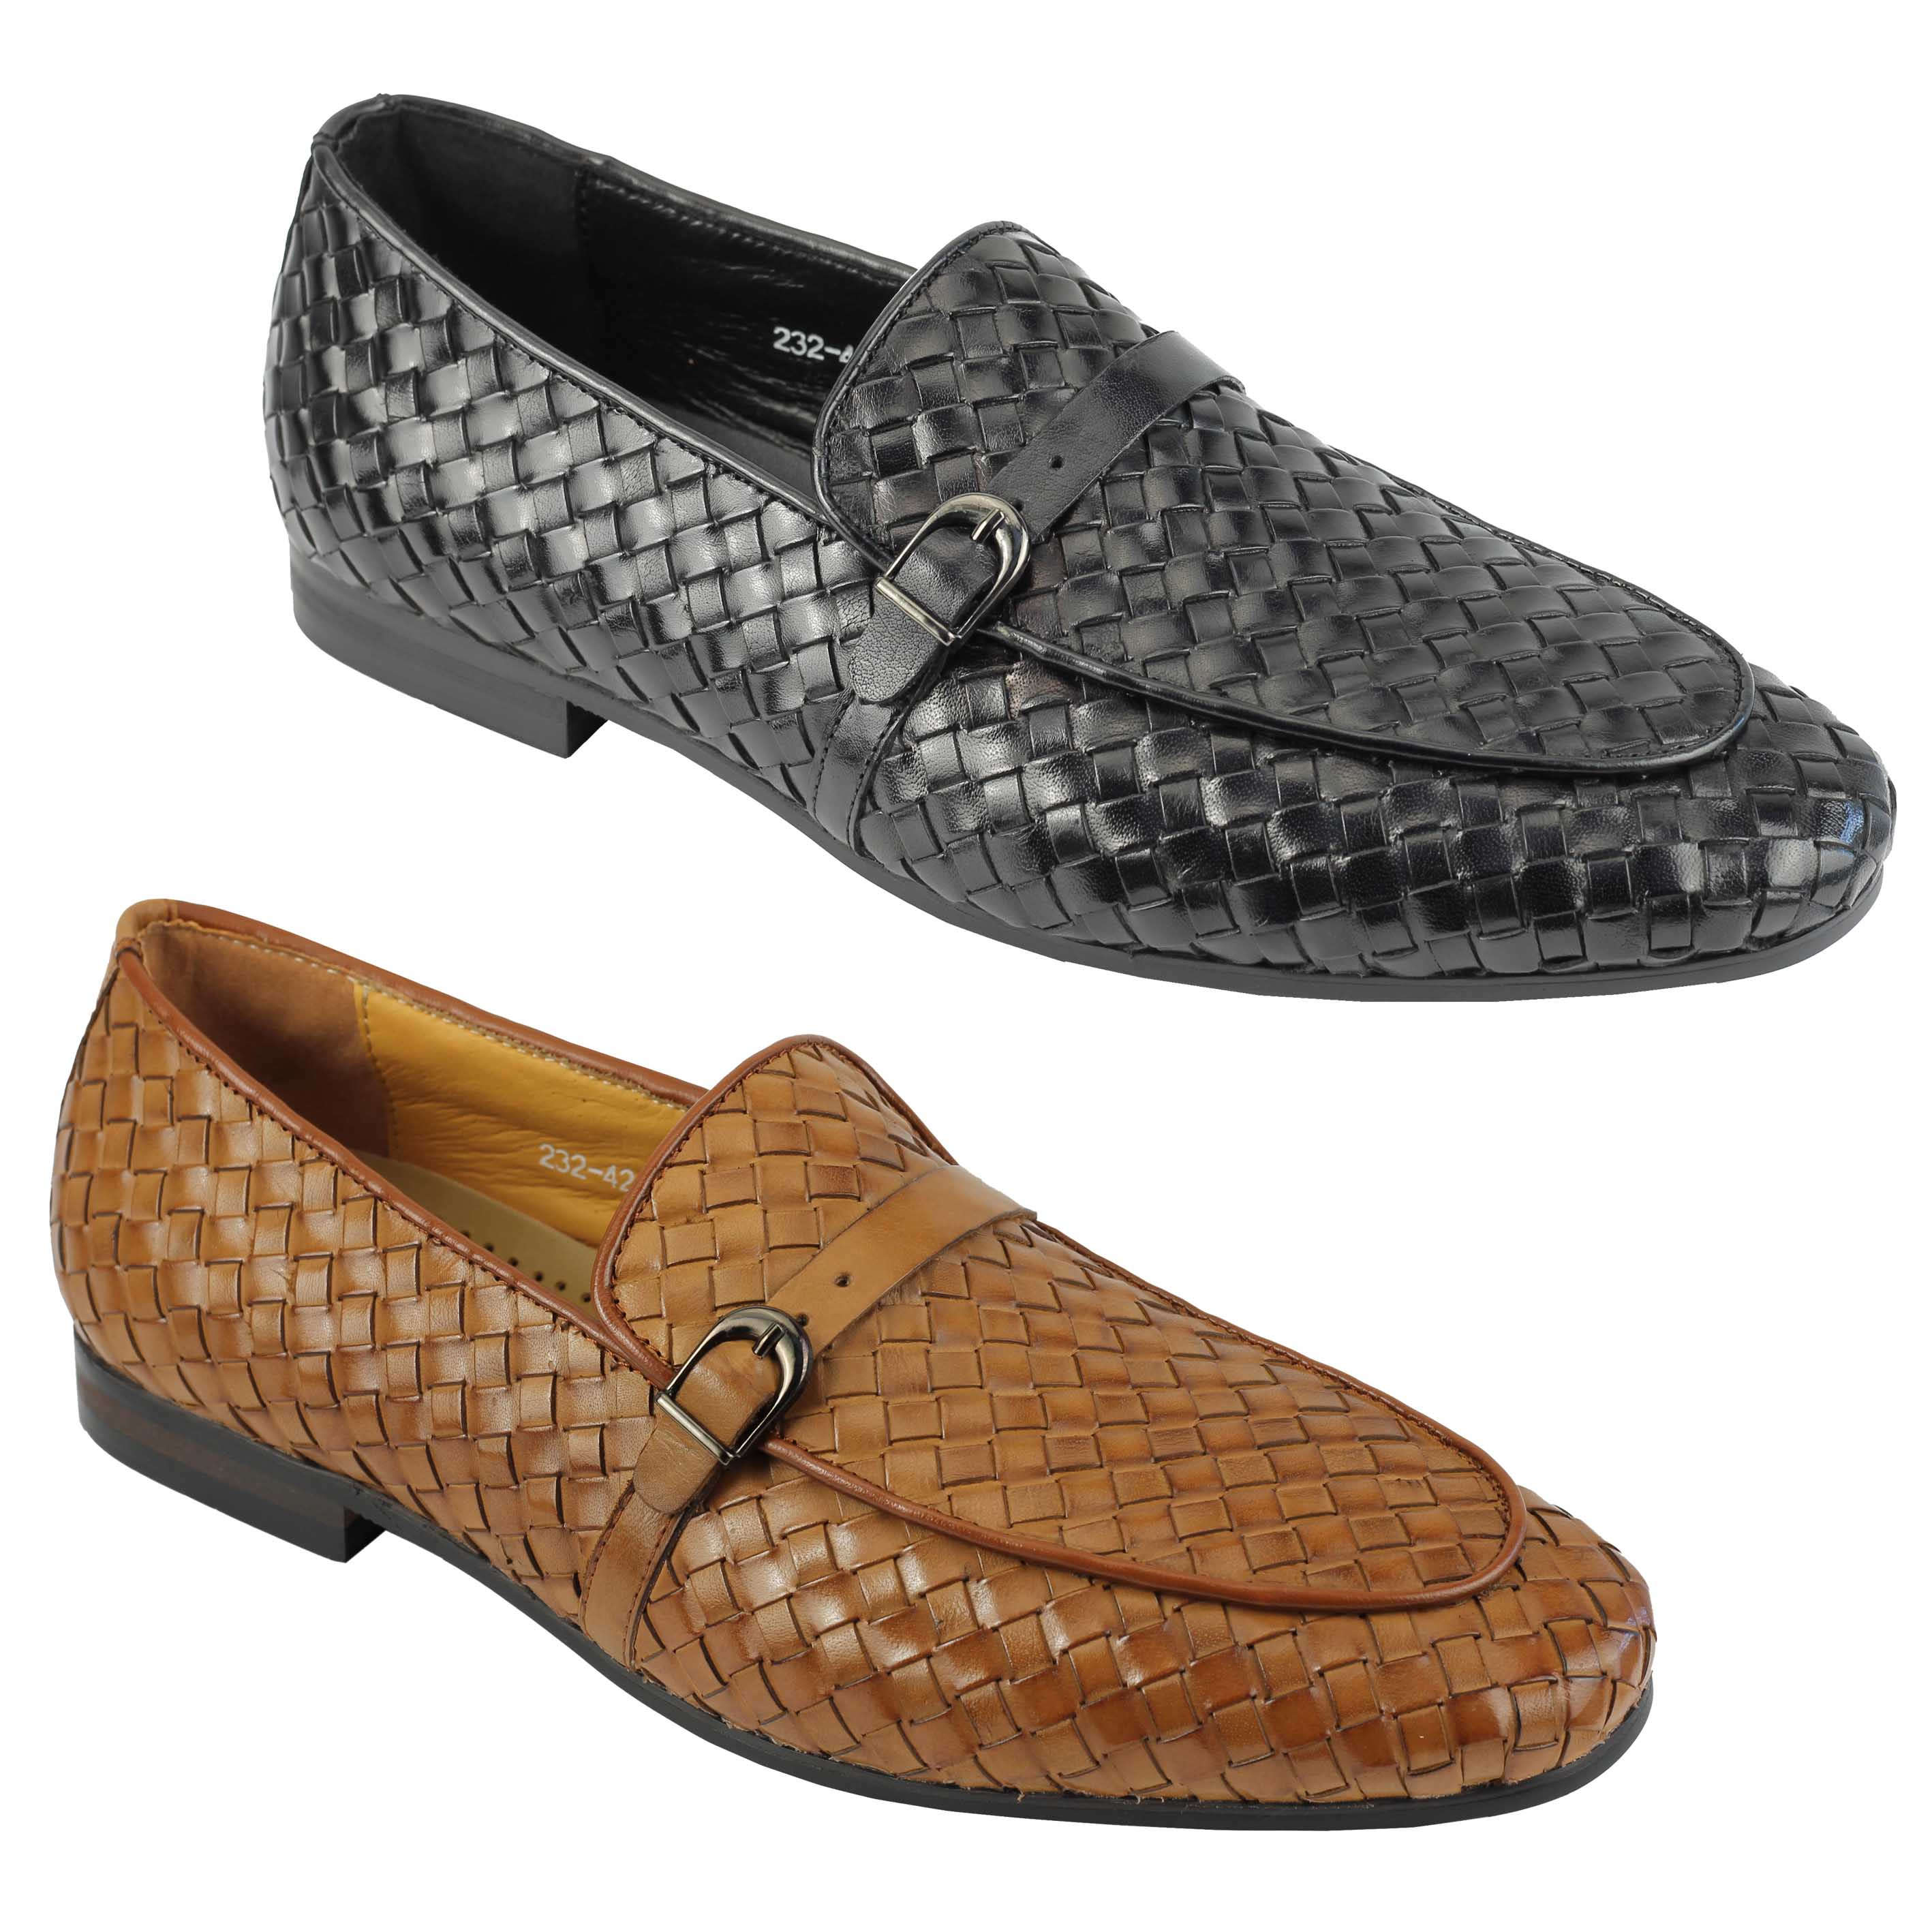 bd1f870f48c Details about Mens Black   Tan Hand Woven Real Leather Loafers Smart MOD  Vintage Driving Shoes